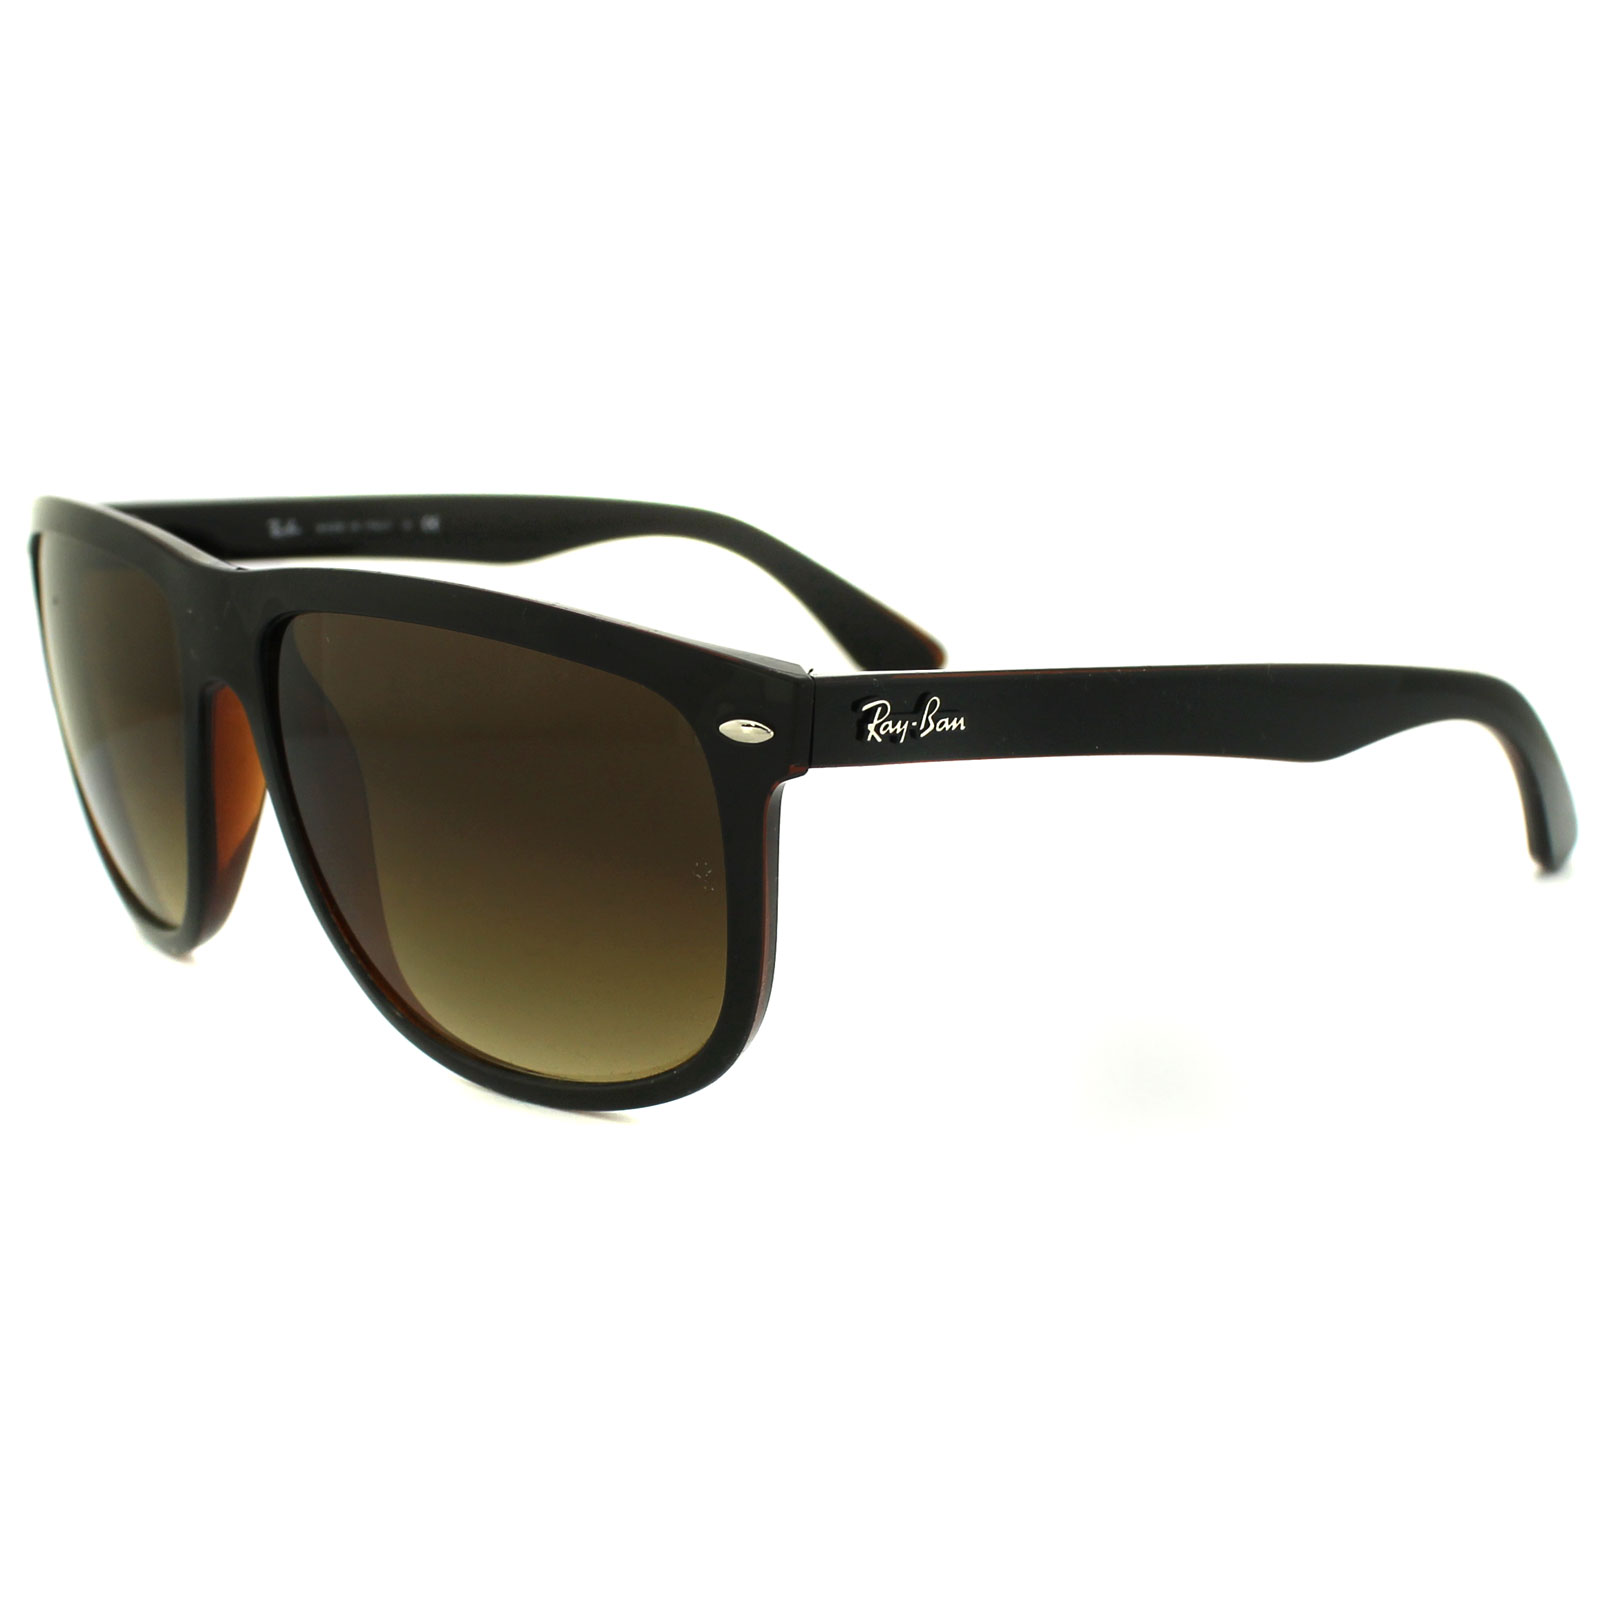 Sentinel Ray-Ban Sunglasses 4147 609585 Top Black on Brown Brown Gradient 49b7d68124